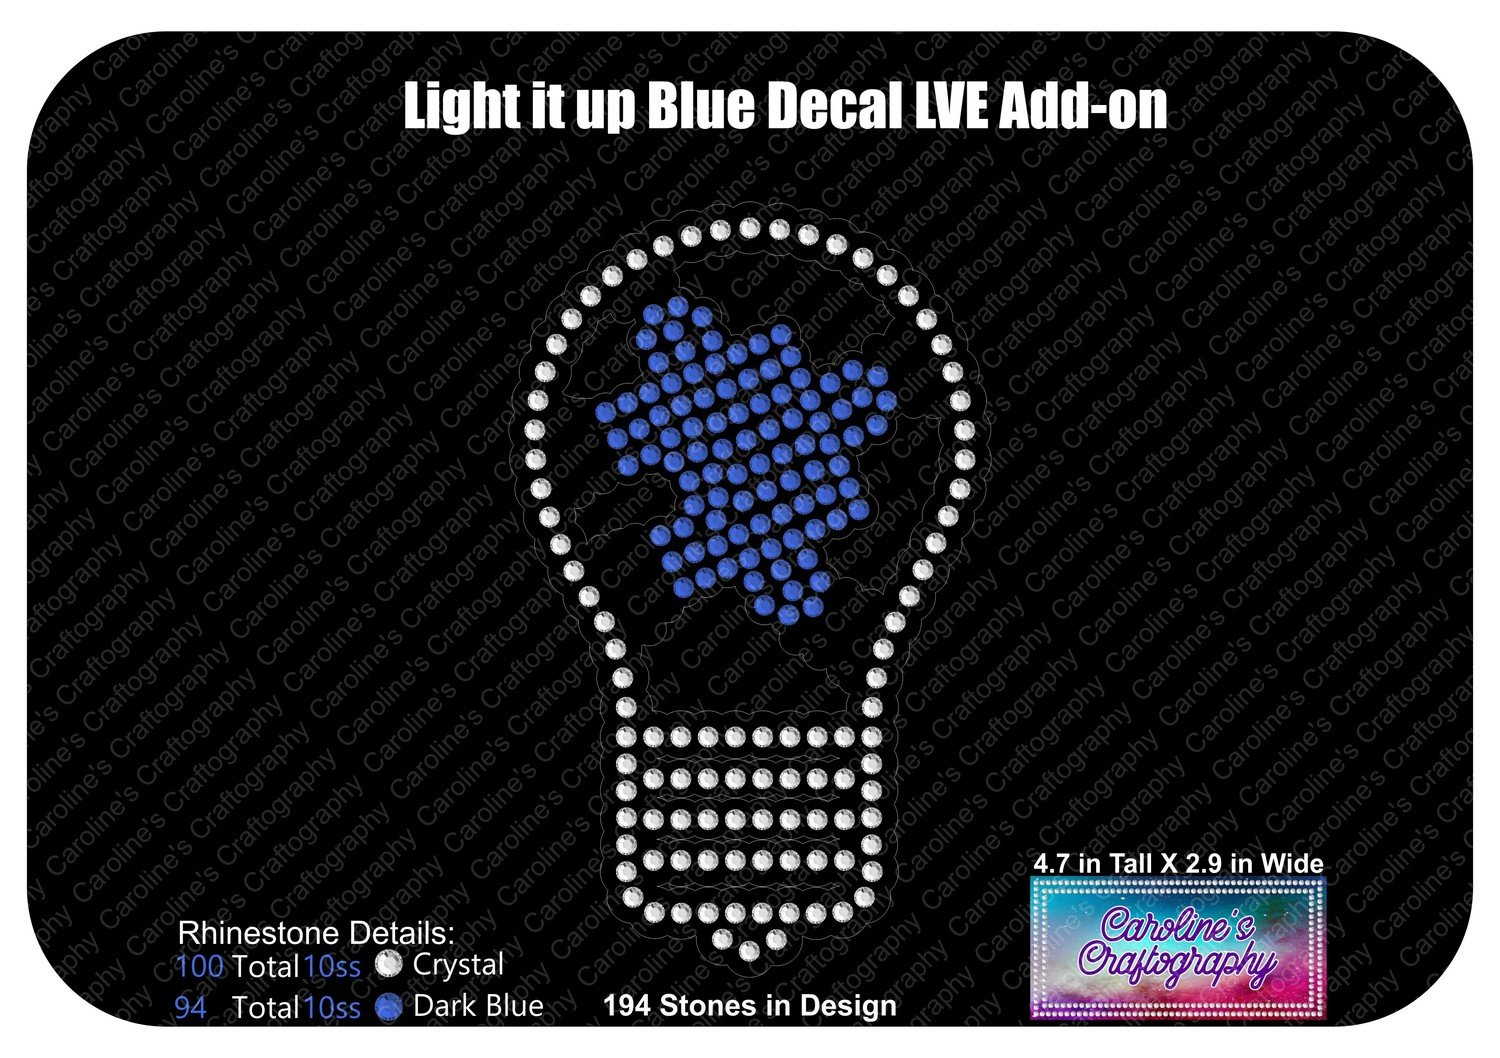 Autism Puzzle Piece Light Bulb Decal LVE Add-on